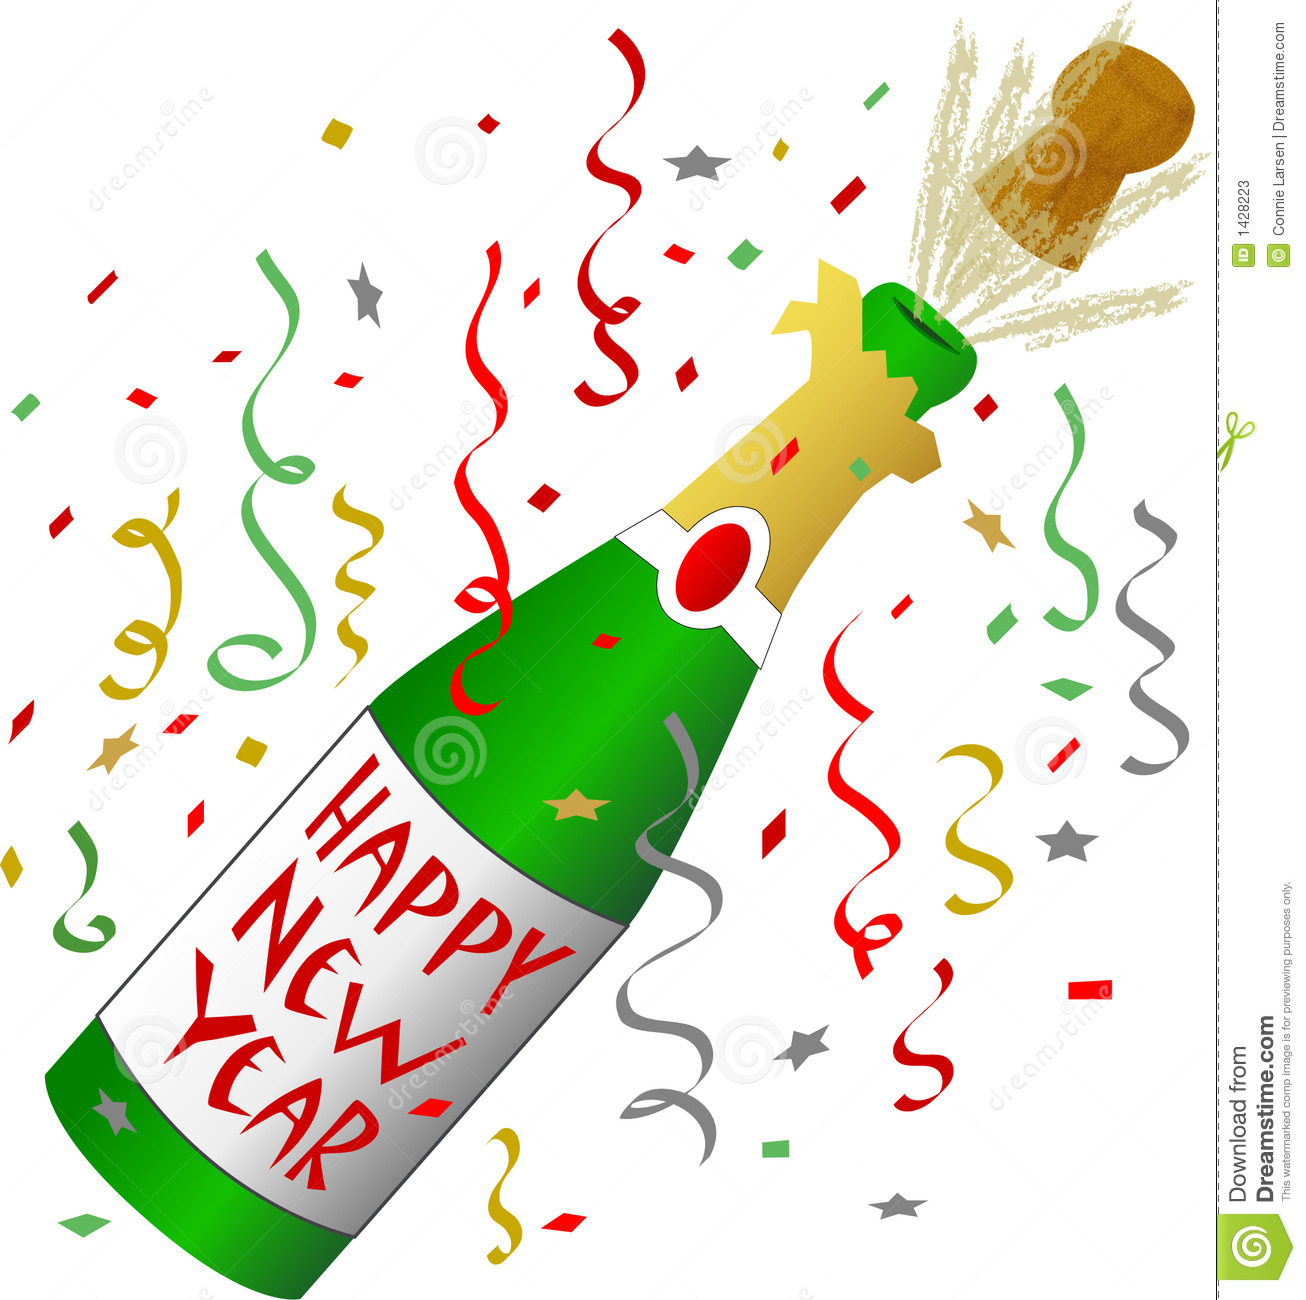 Happy new year champagne clipart.